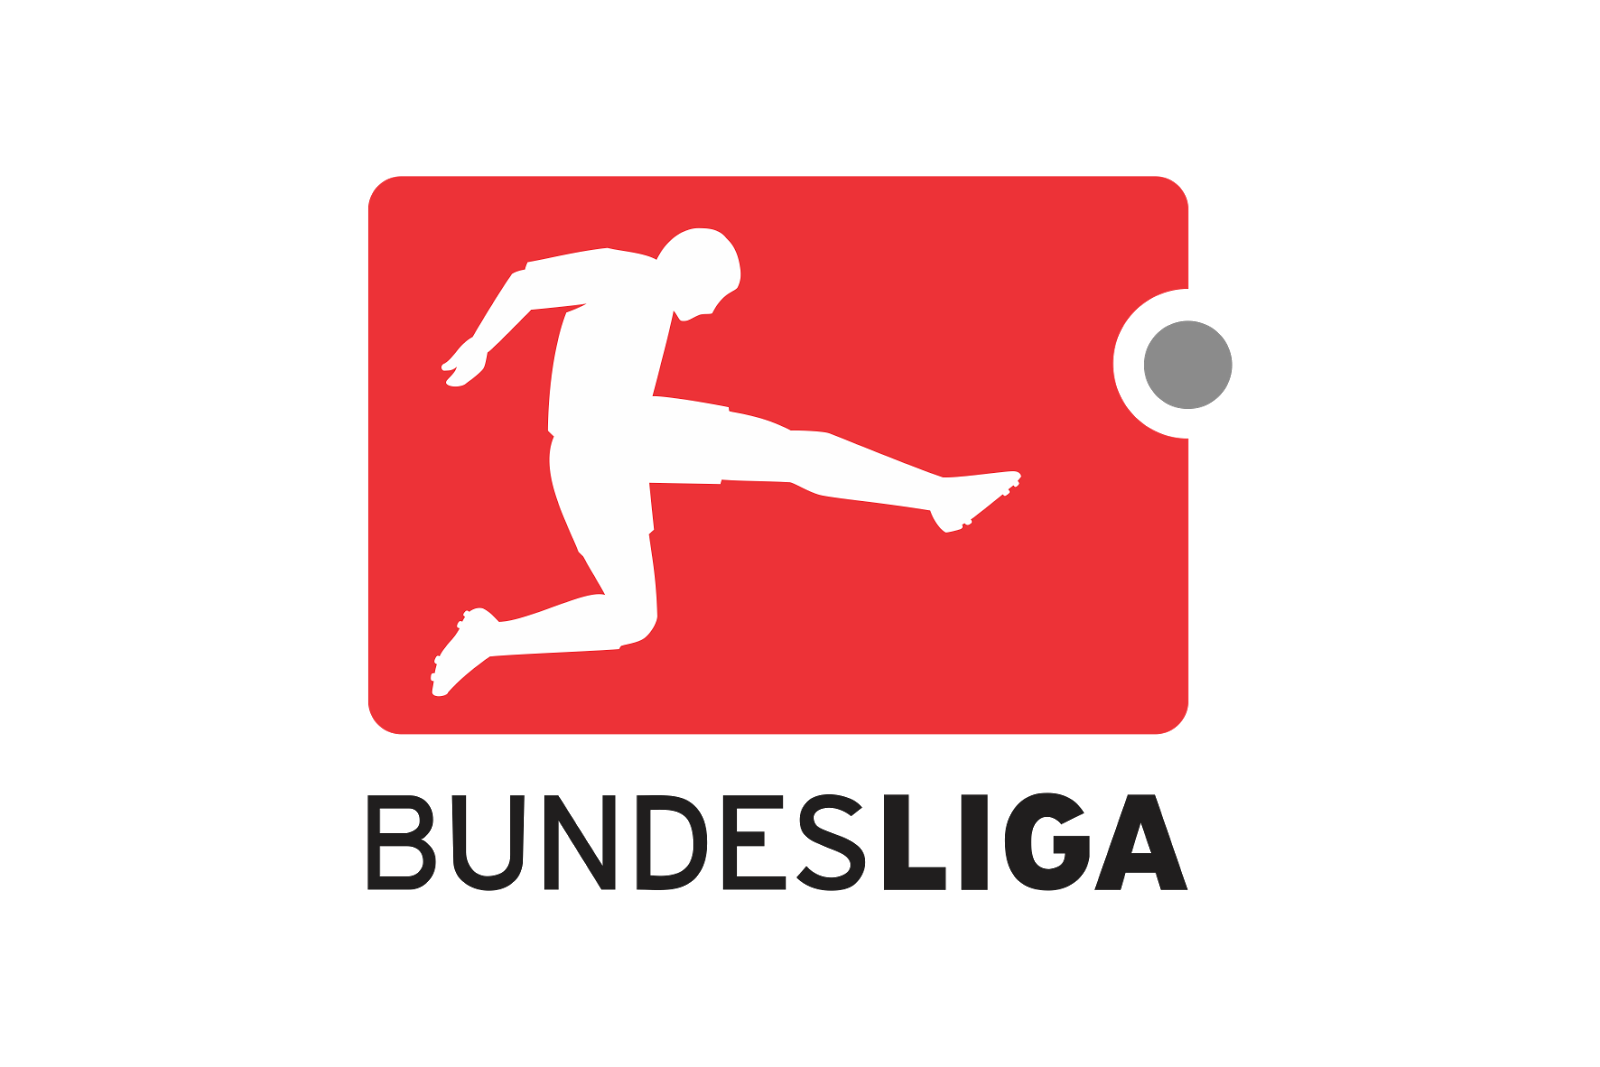 Bundesliga logo for Sport bundesliga